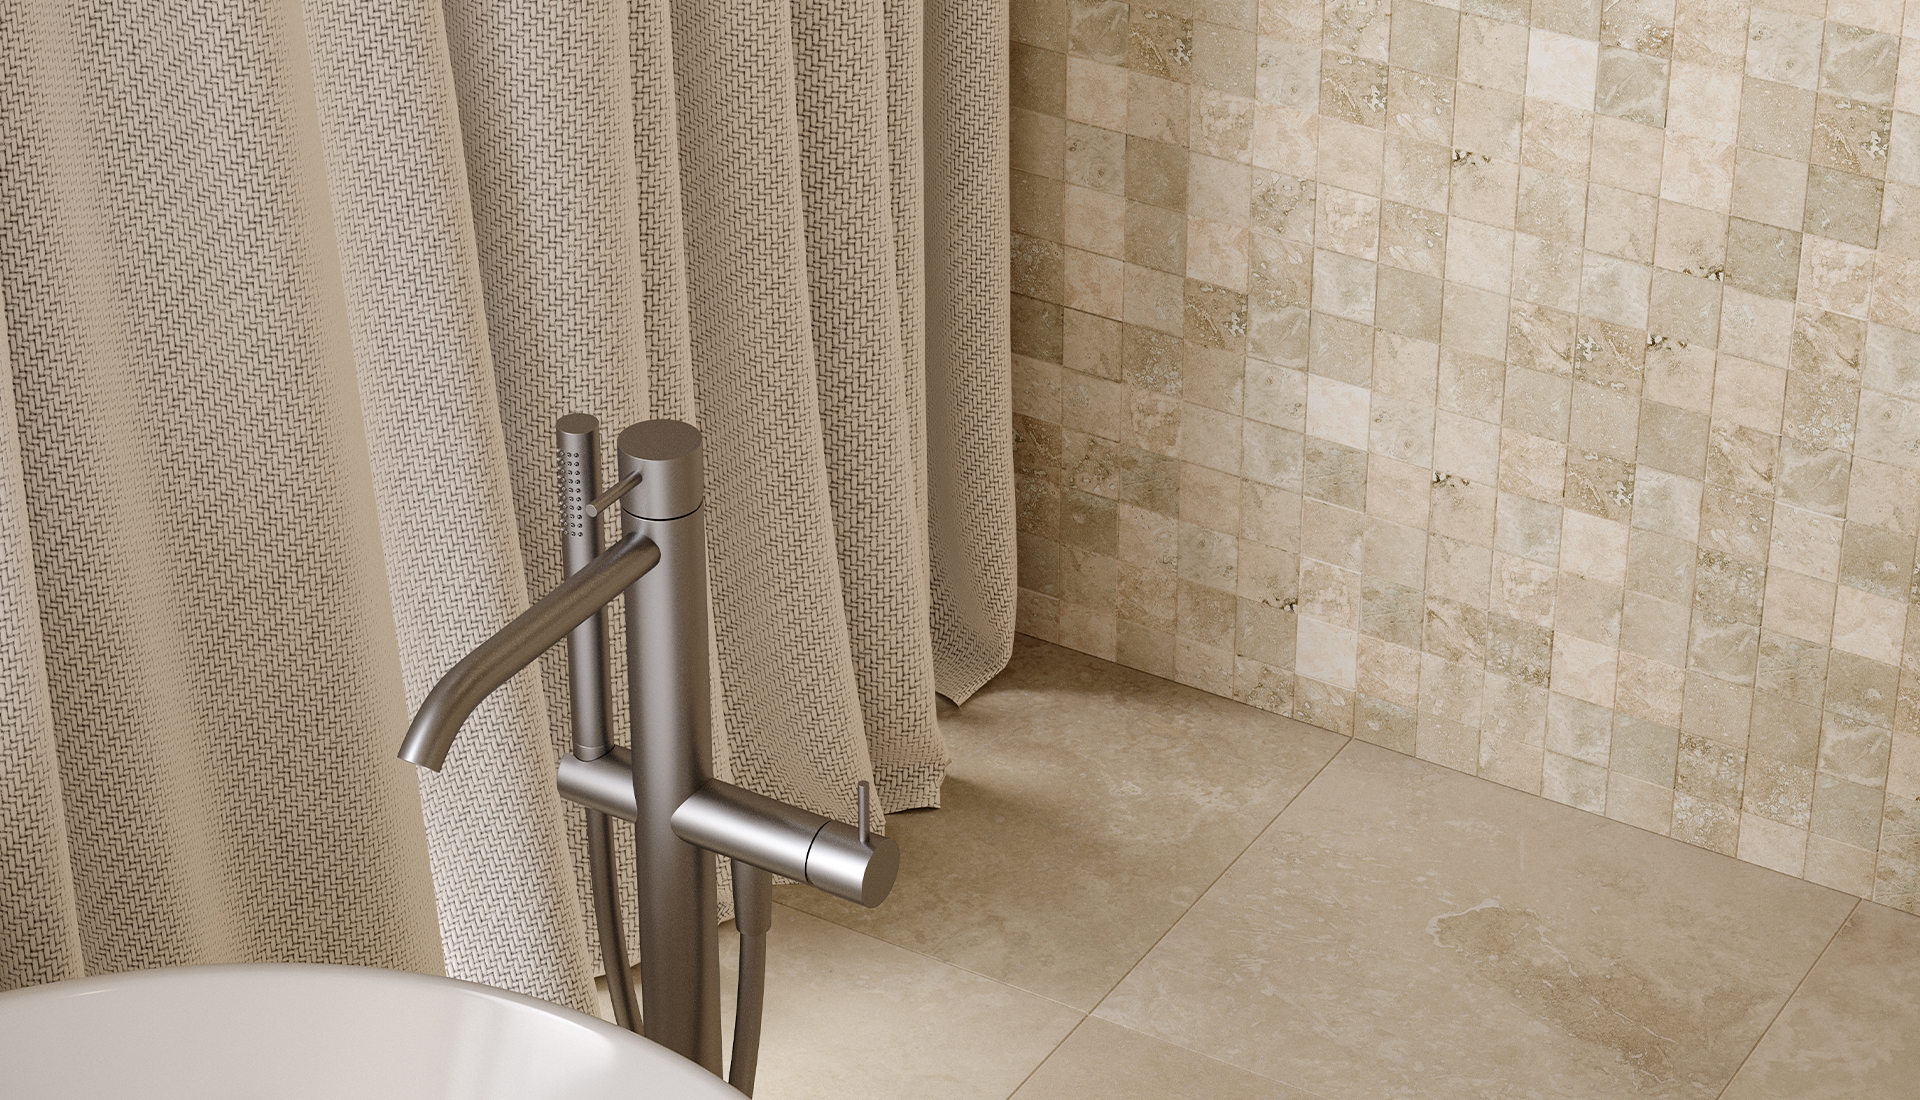 2 x 2 in / 5 x 5 cm Ivory Filled & Honed Travertine Mosaic